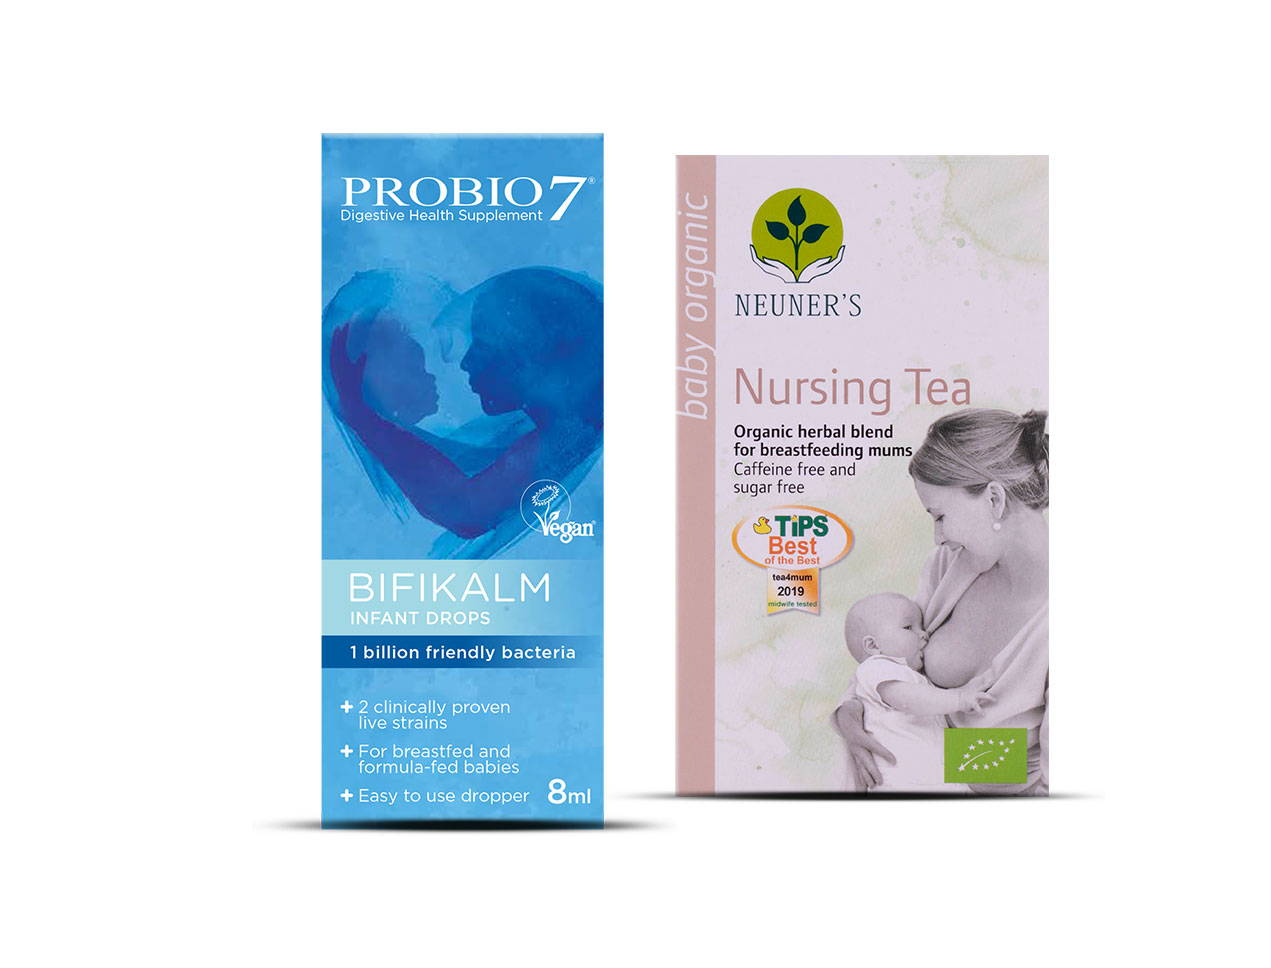 Our best seller within the Probio7 range, a high amount of friendly bacteria for those looking to support their immune and digestive system.